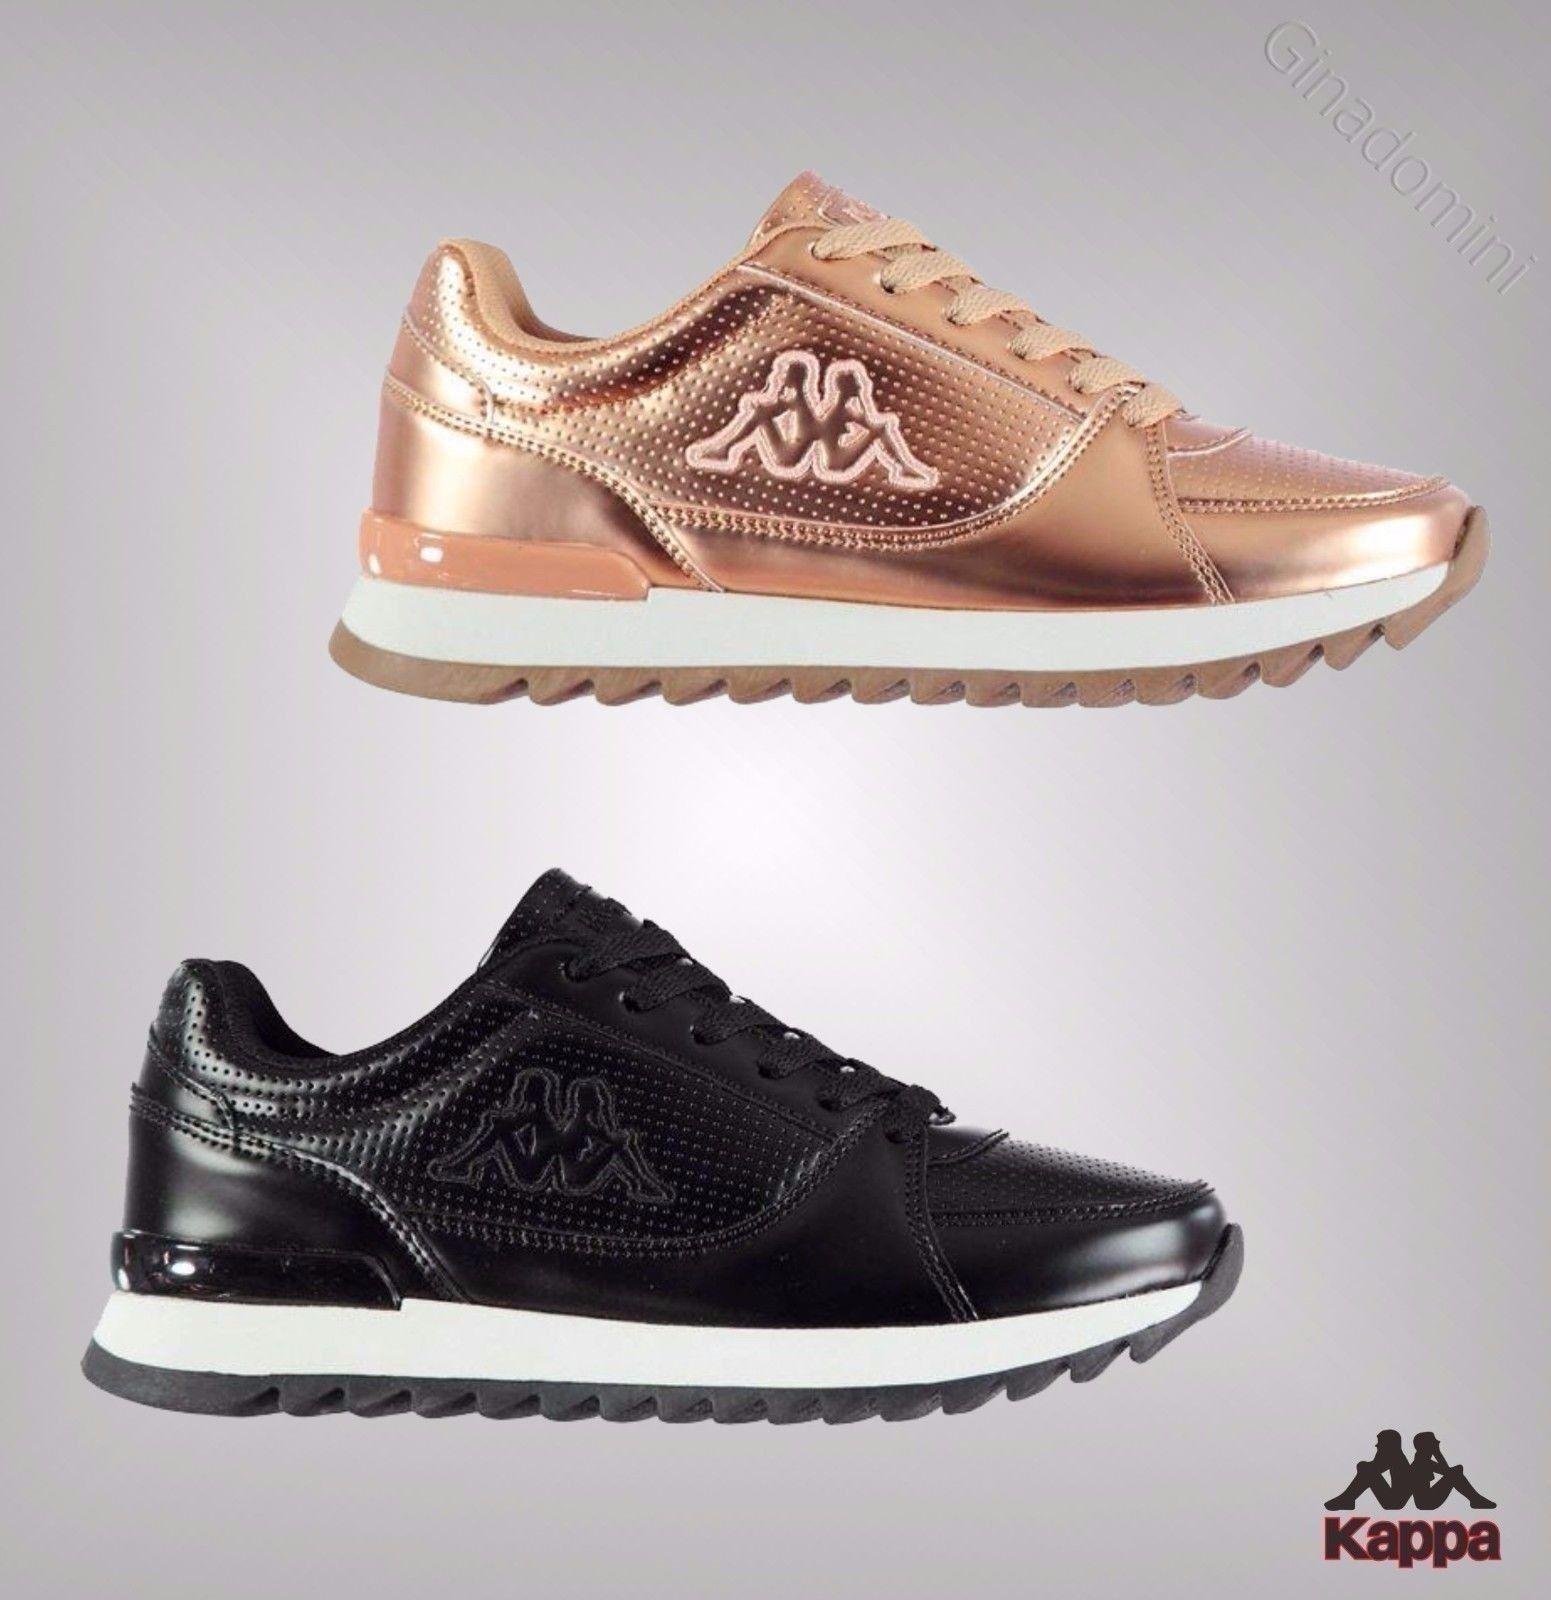 4 Annata Contrasting Ladies Branded Shoes Kappa Gym Up Lace Trainers wHxzxpqa4R